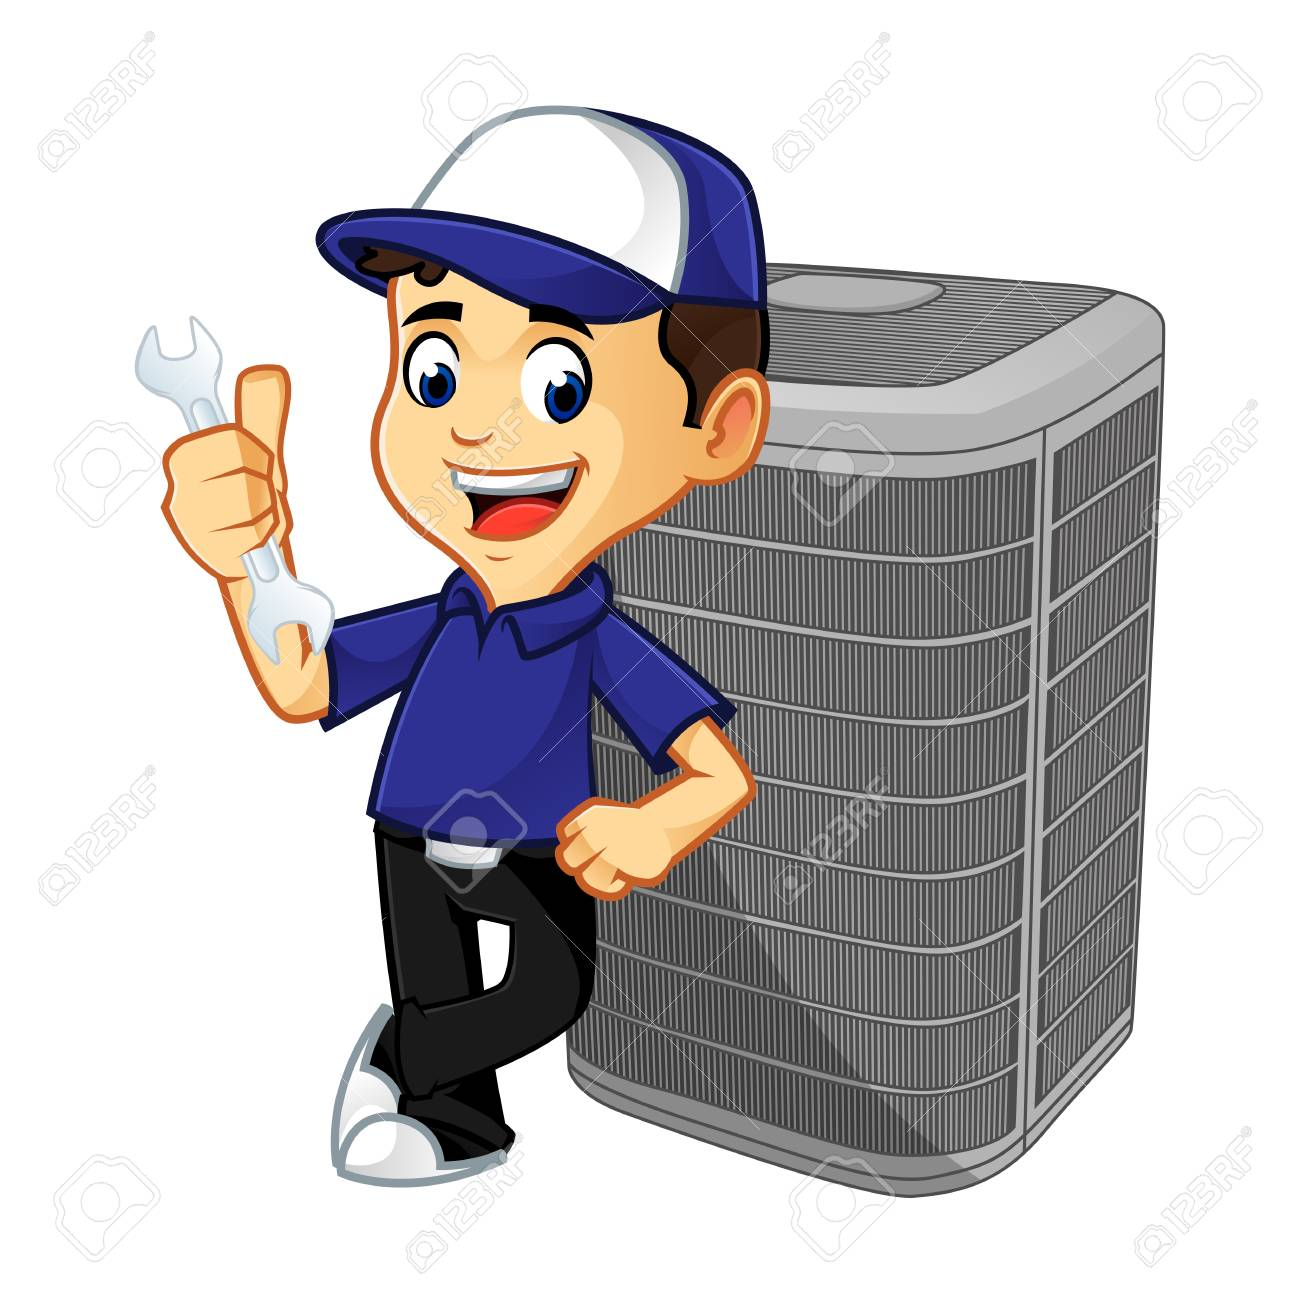 Hvac Cleaner or technician leaning on air conditioner cartoon illustration, can be download in vector format for unlimited image size - 125119654